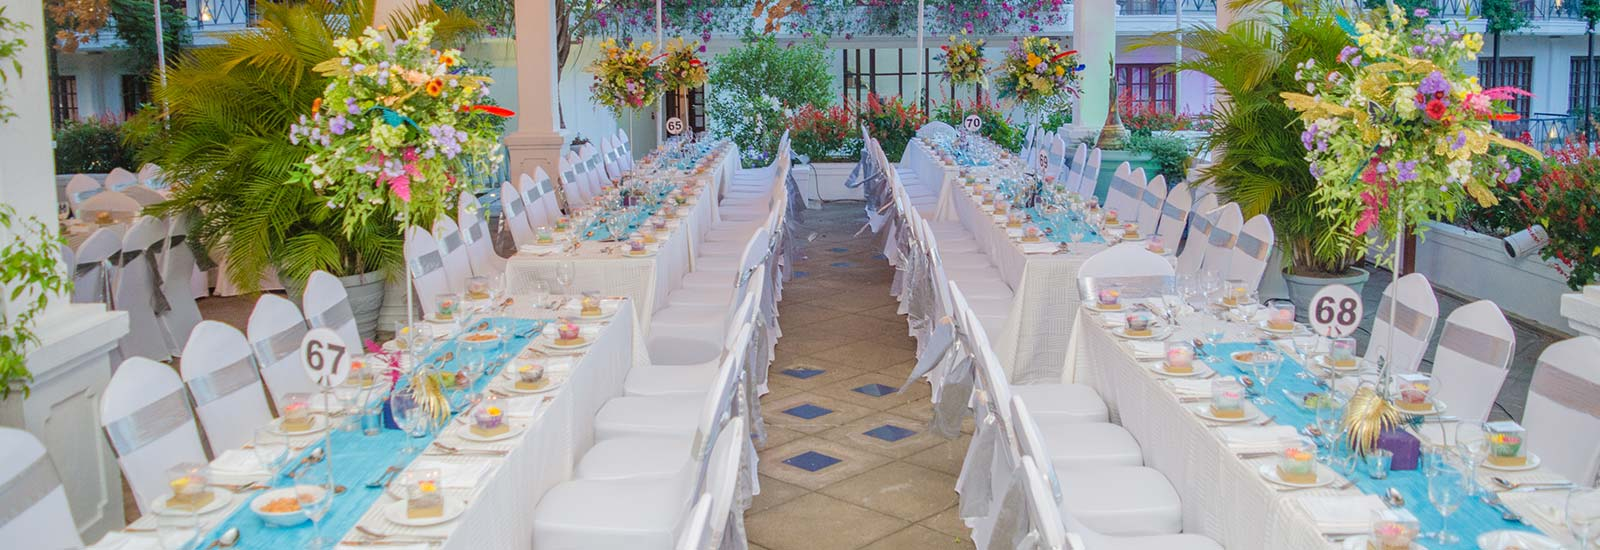 wedding-and-events-4